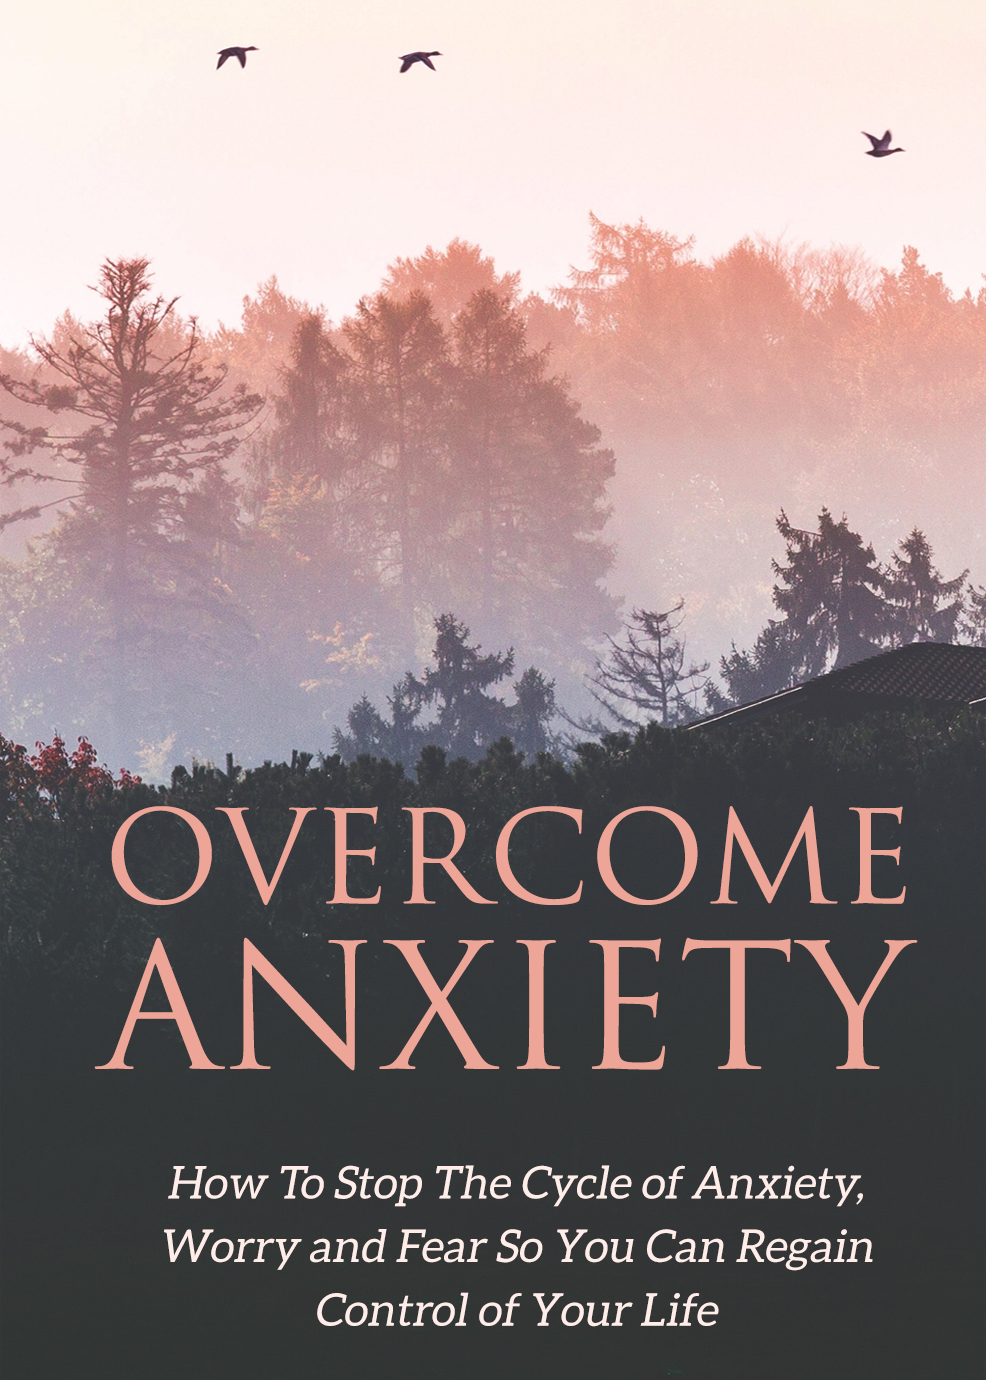 Overcome Anxiety (How To Stop The Cycle Of Anxiety, Worry, And Fear So You Can Regain Control Of Your Life) Ebook's Book Image